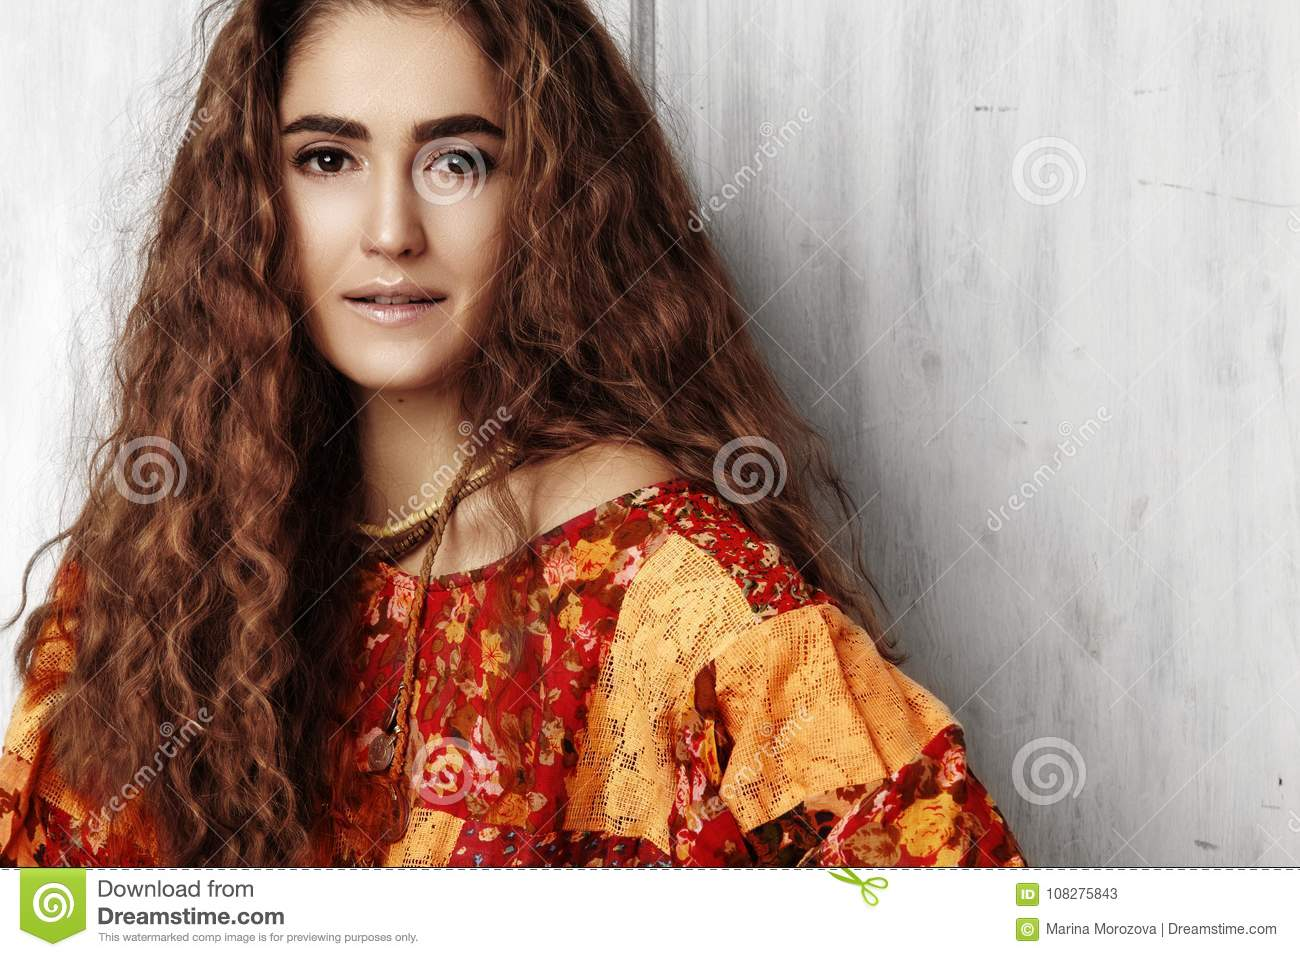 Beautiful Young Woman With Long Curly Hairstyle Fashion Jewelry With Brunette Hair Indian Style Clothes Long Dress Stock Image Image Of Hairstyle Glamorous 108275843